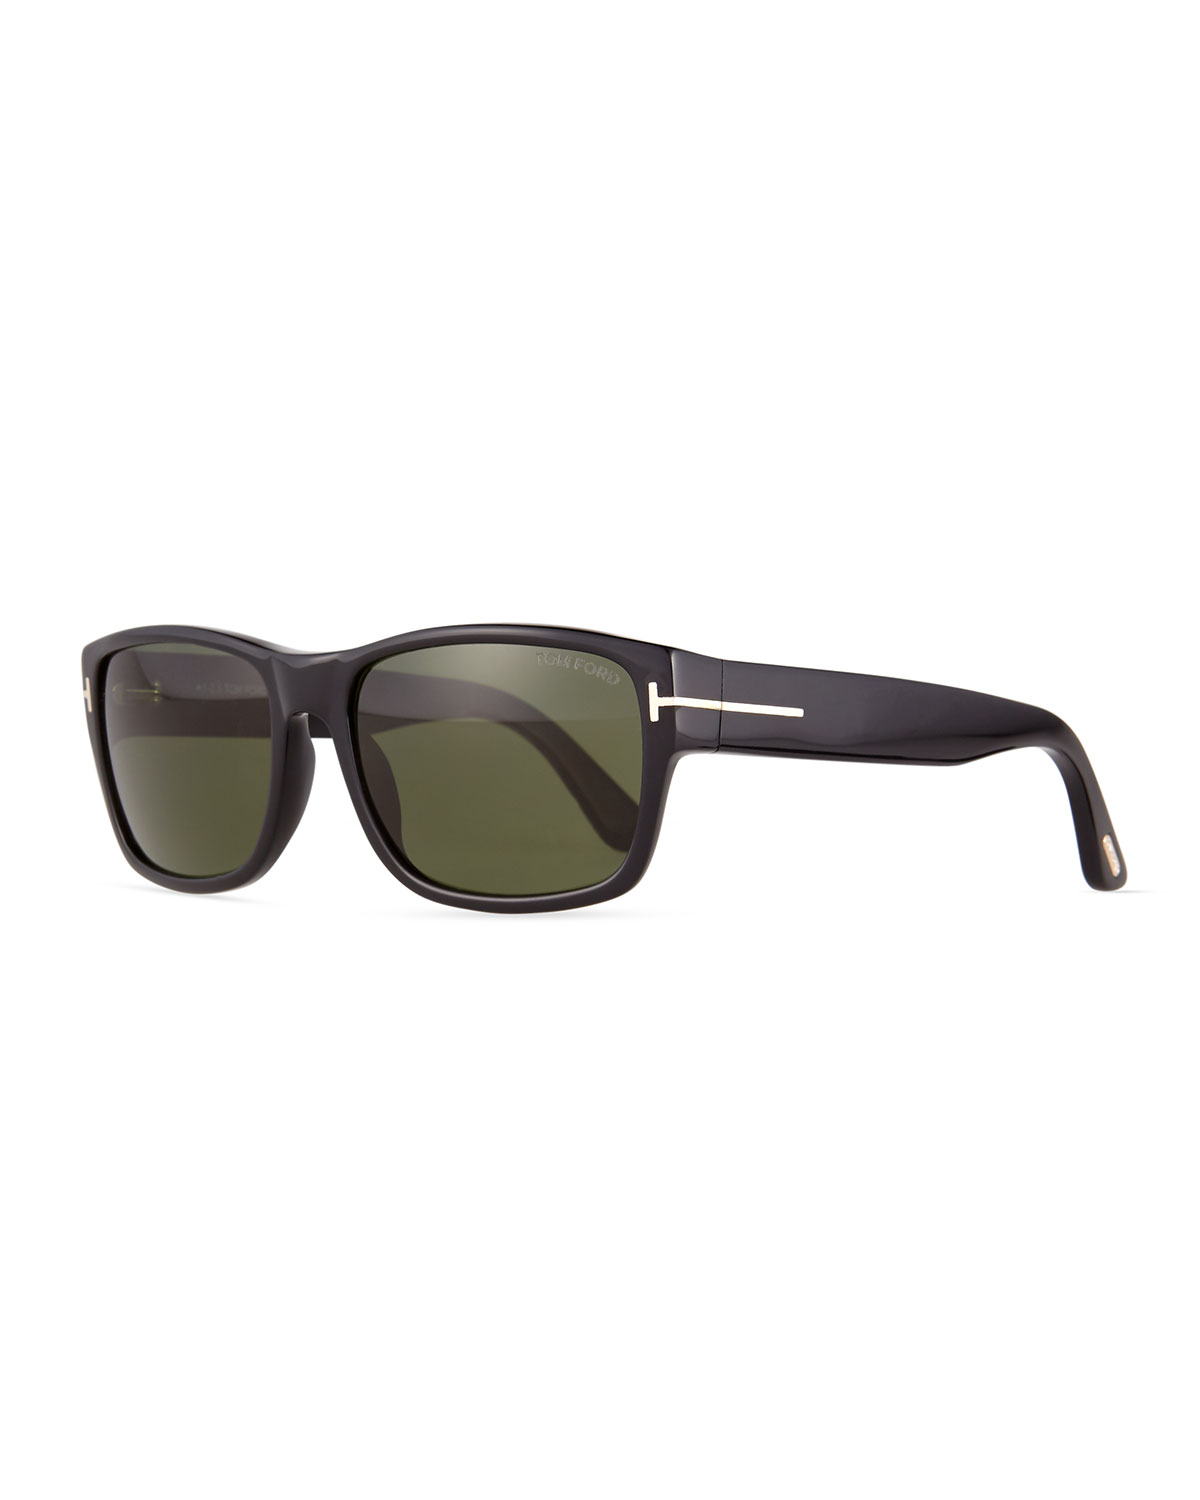 6e6383df63 Tom Ford Black Sunglasses